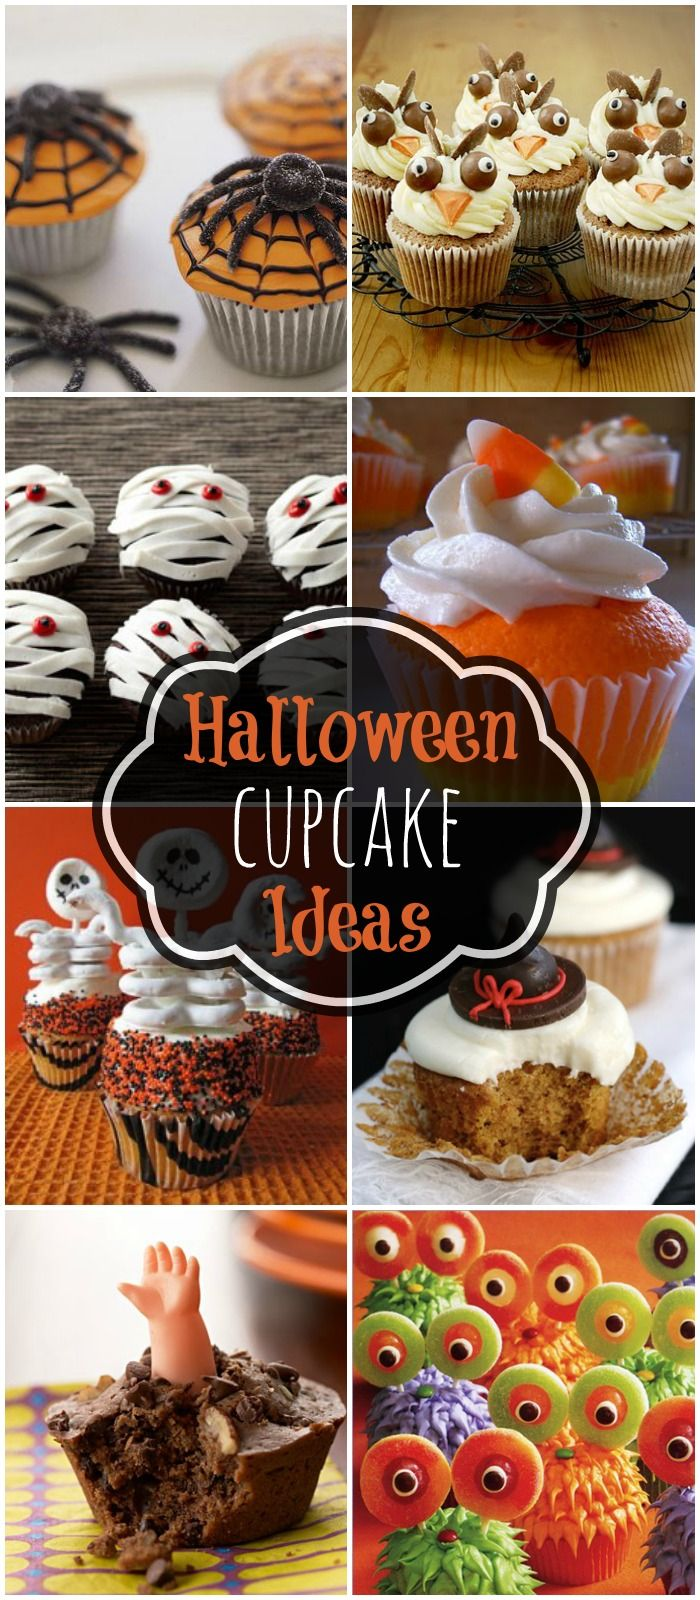 17 Best ideas about Halloween Cupcakes on Pinterest